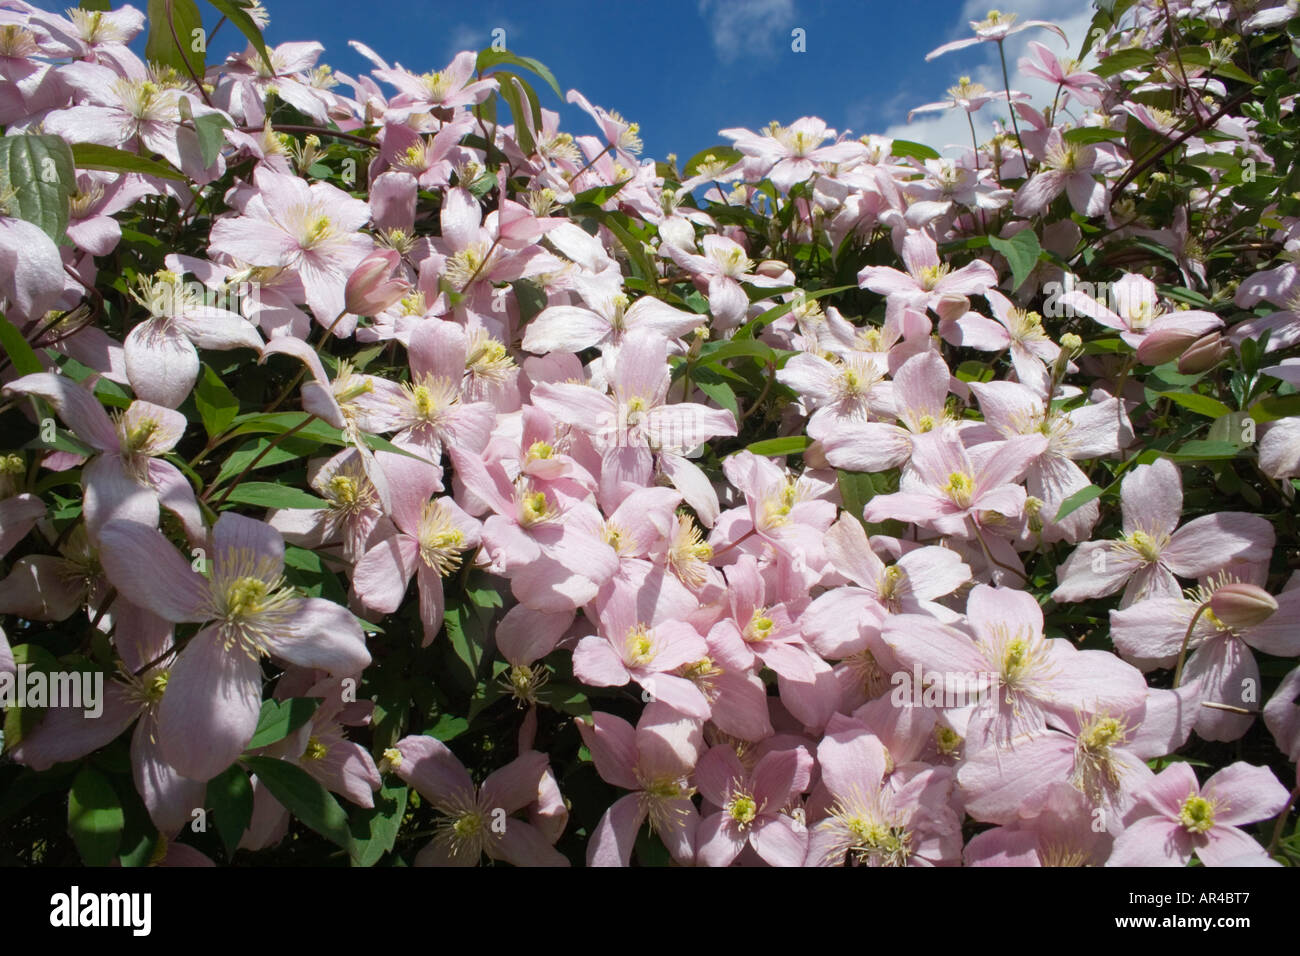 Clematis montana rubens climbing plant pink fragrant flowers stock photo royalty free image - Climbing plants that produce fragrant flowers ...